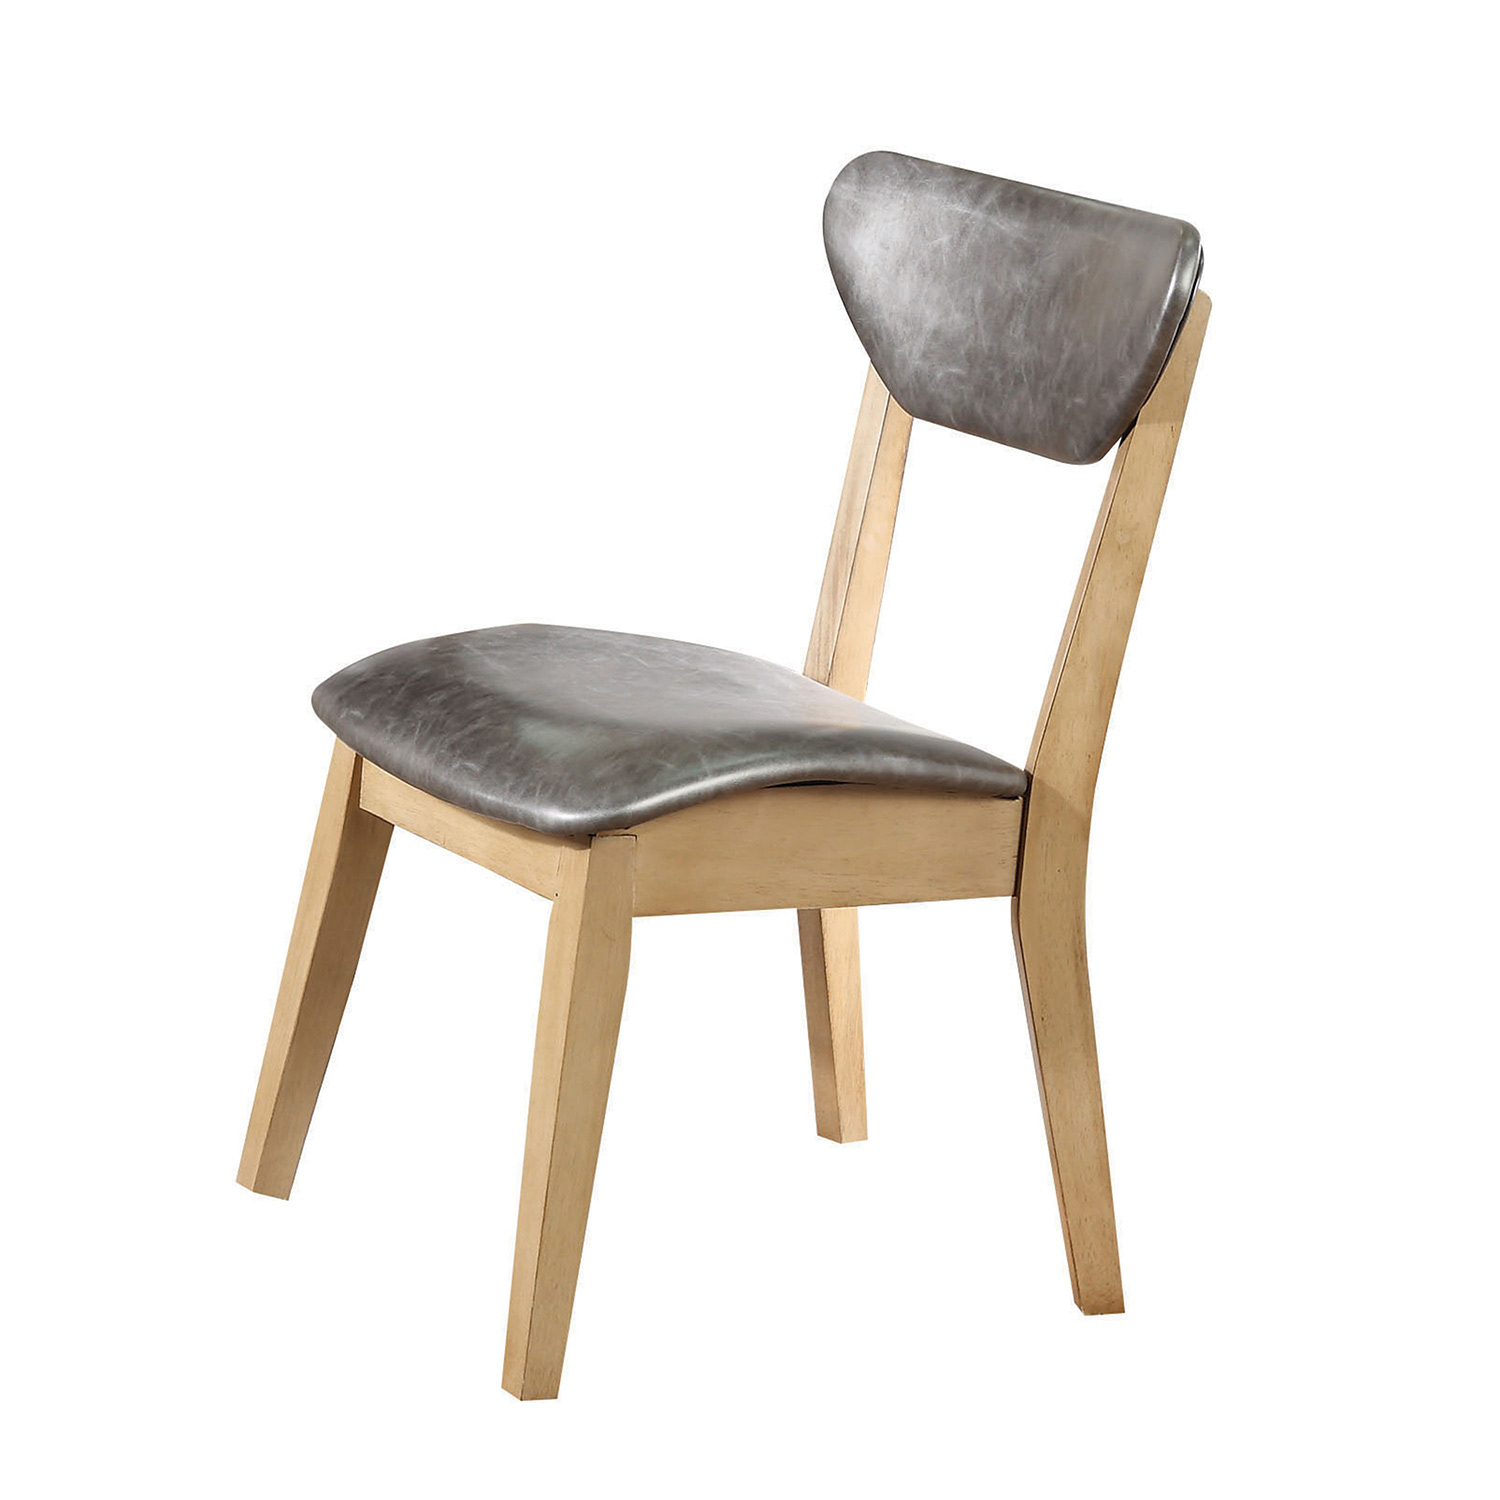 Acme Rosetta Side Chair - Silver Vinyl/White Washed